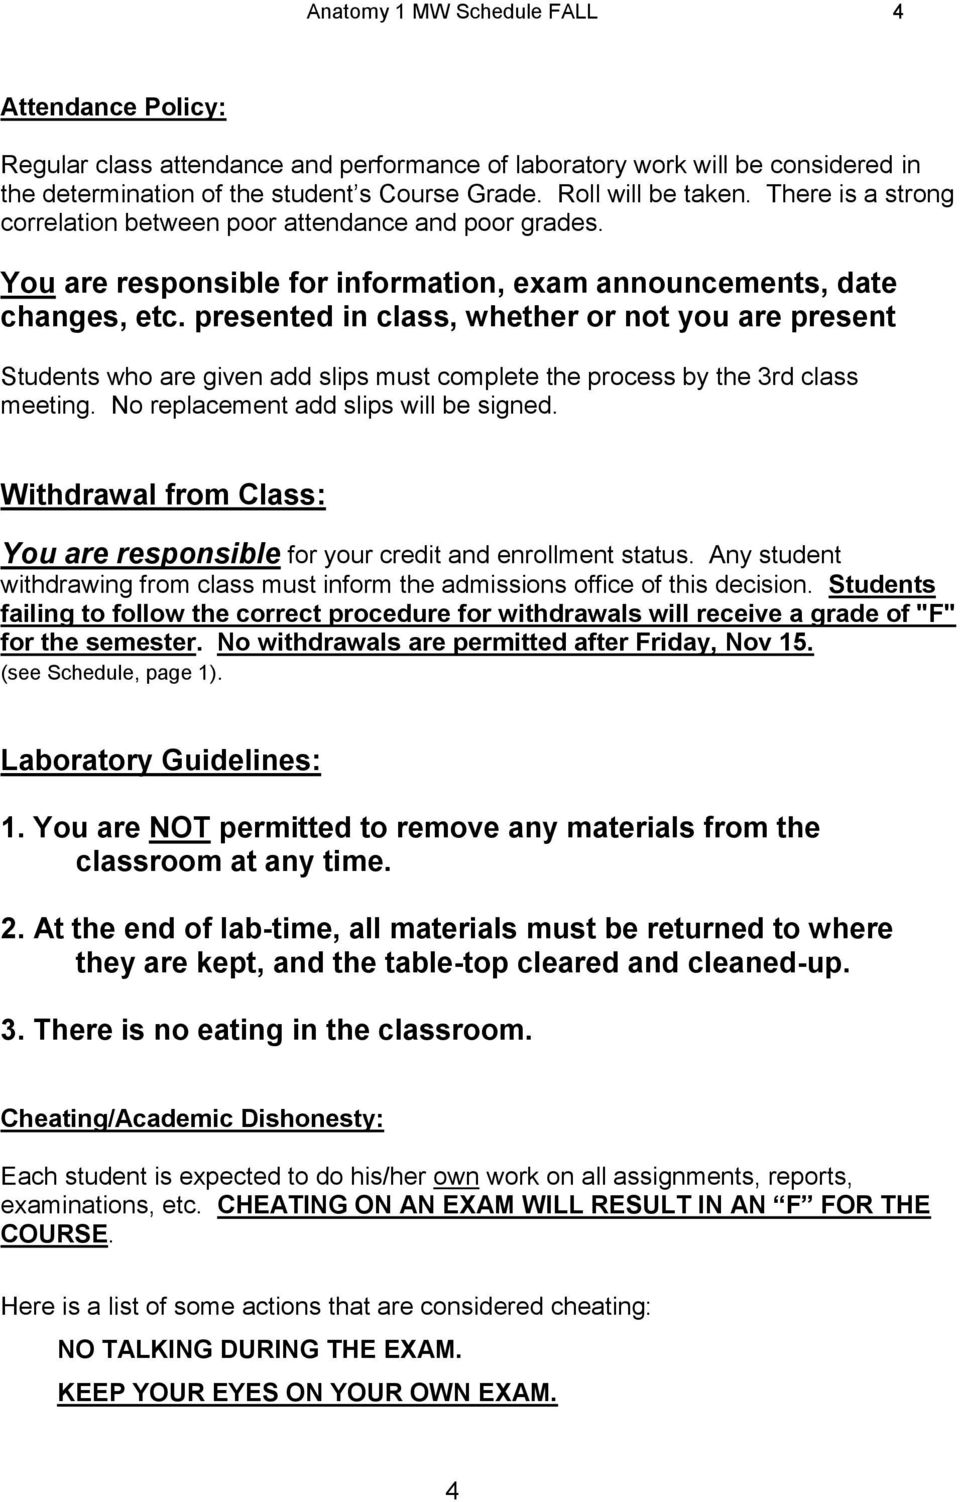 presented in class, whether or not you are present Students who are given add slips must complete the process by the 3rd class meeting. No replacement add slips will be signed.